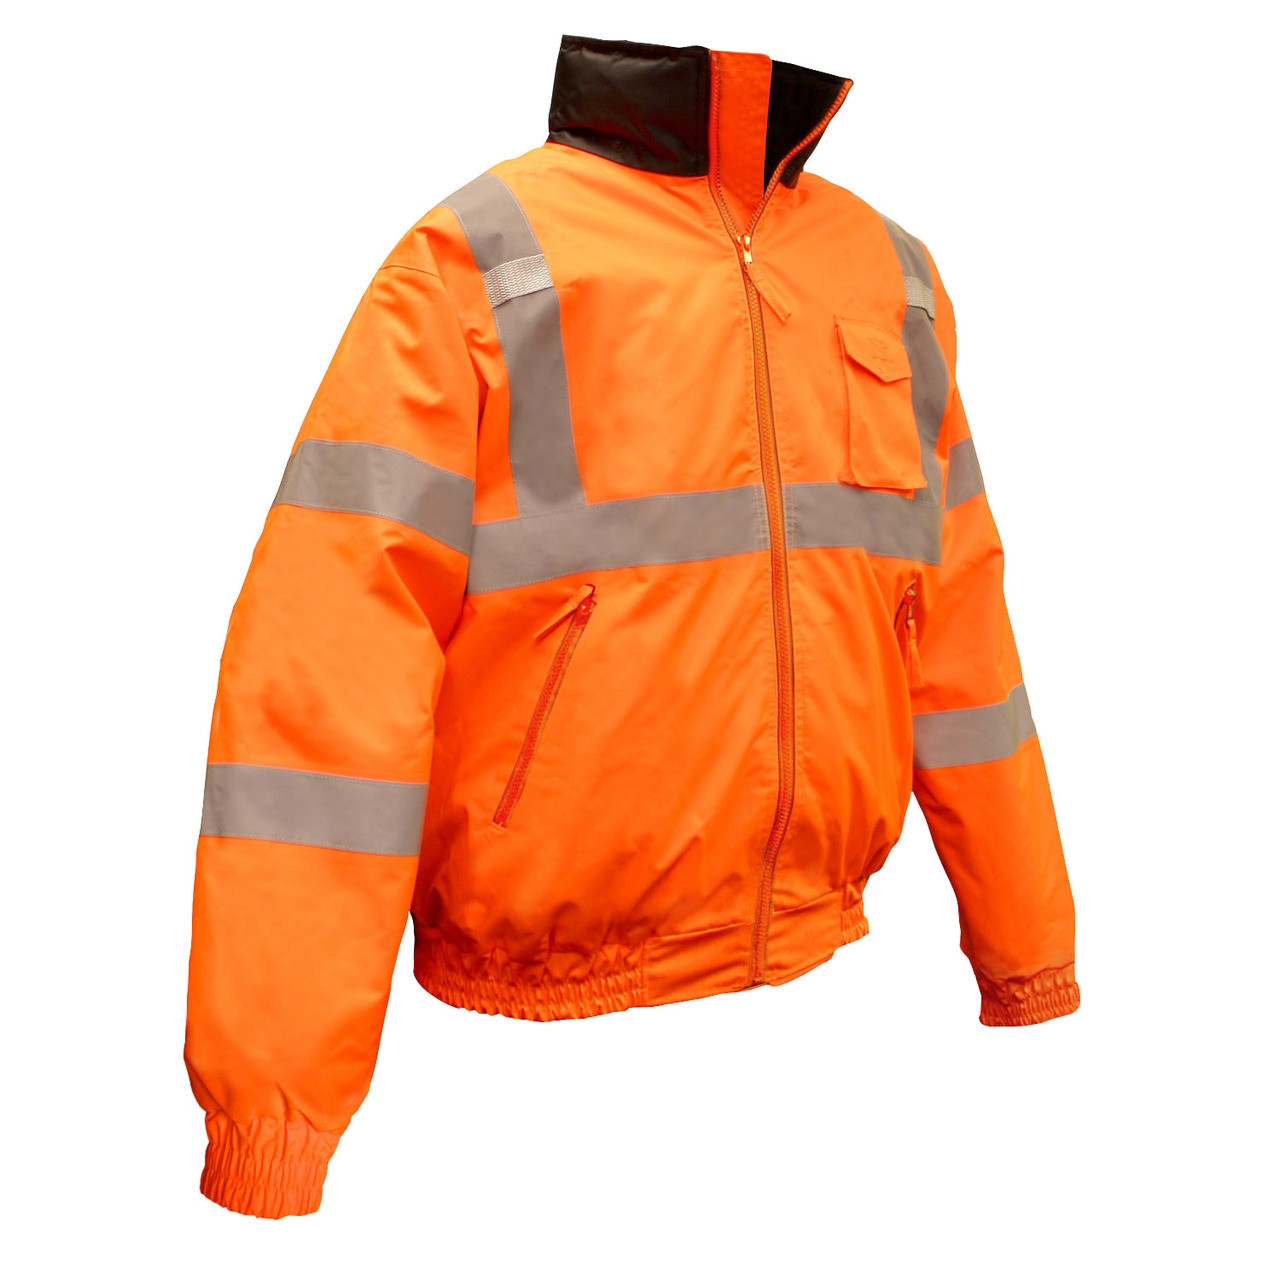 e38b7a85a Radians Class III Quilted Hi-Viz Orange Bomber Jacket [M-5XL]